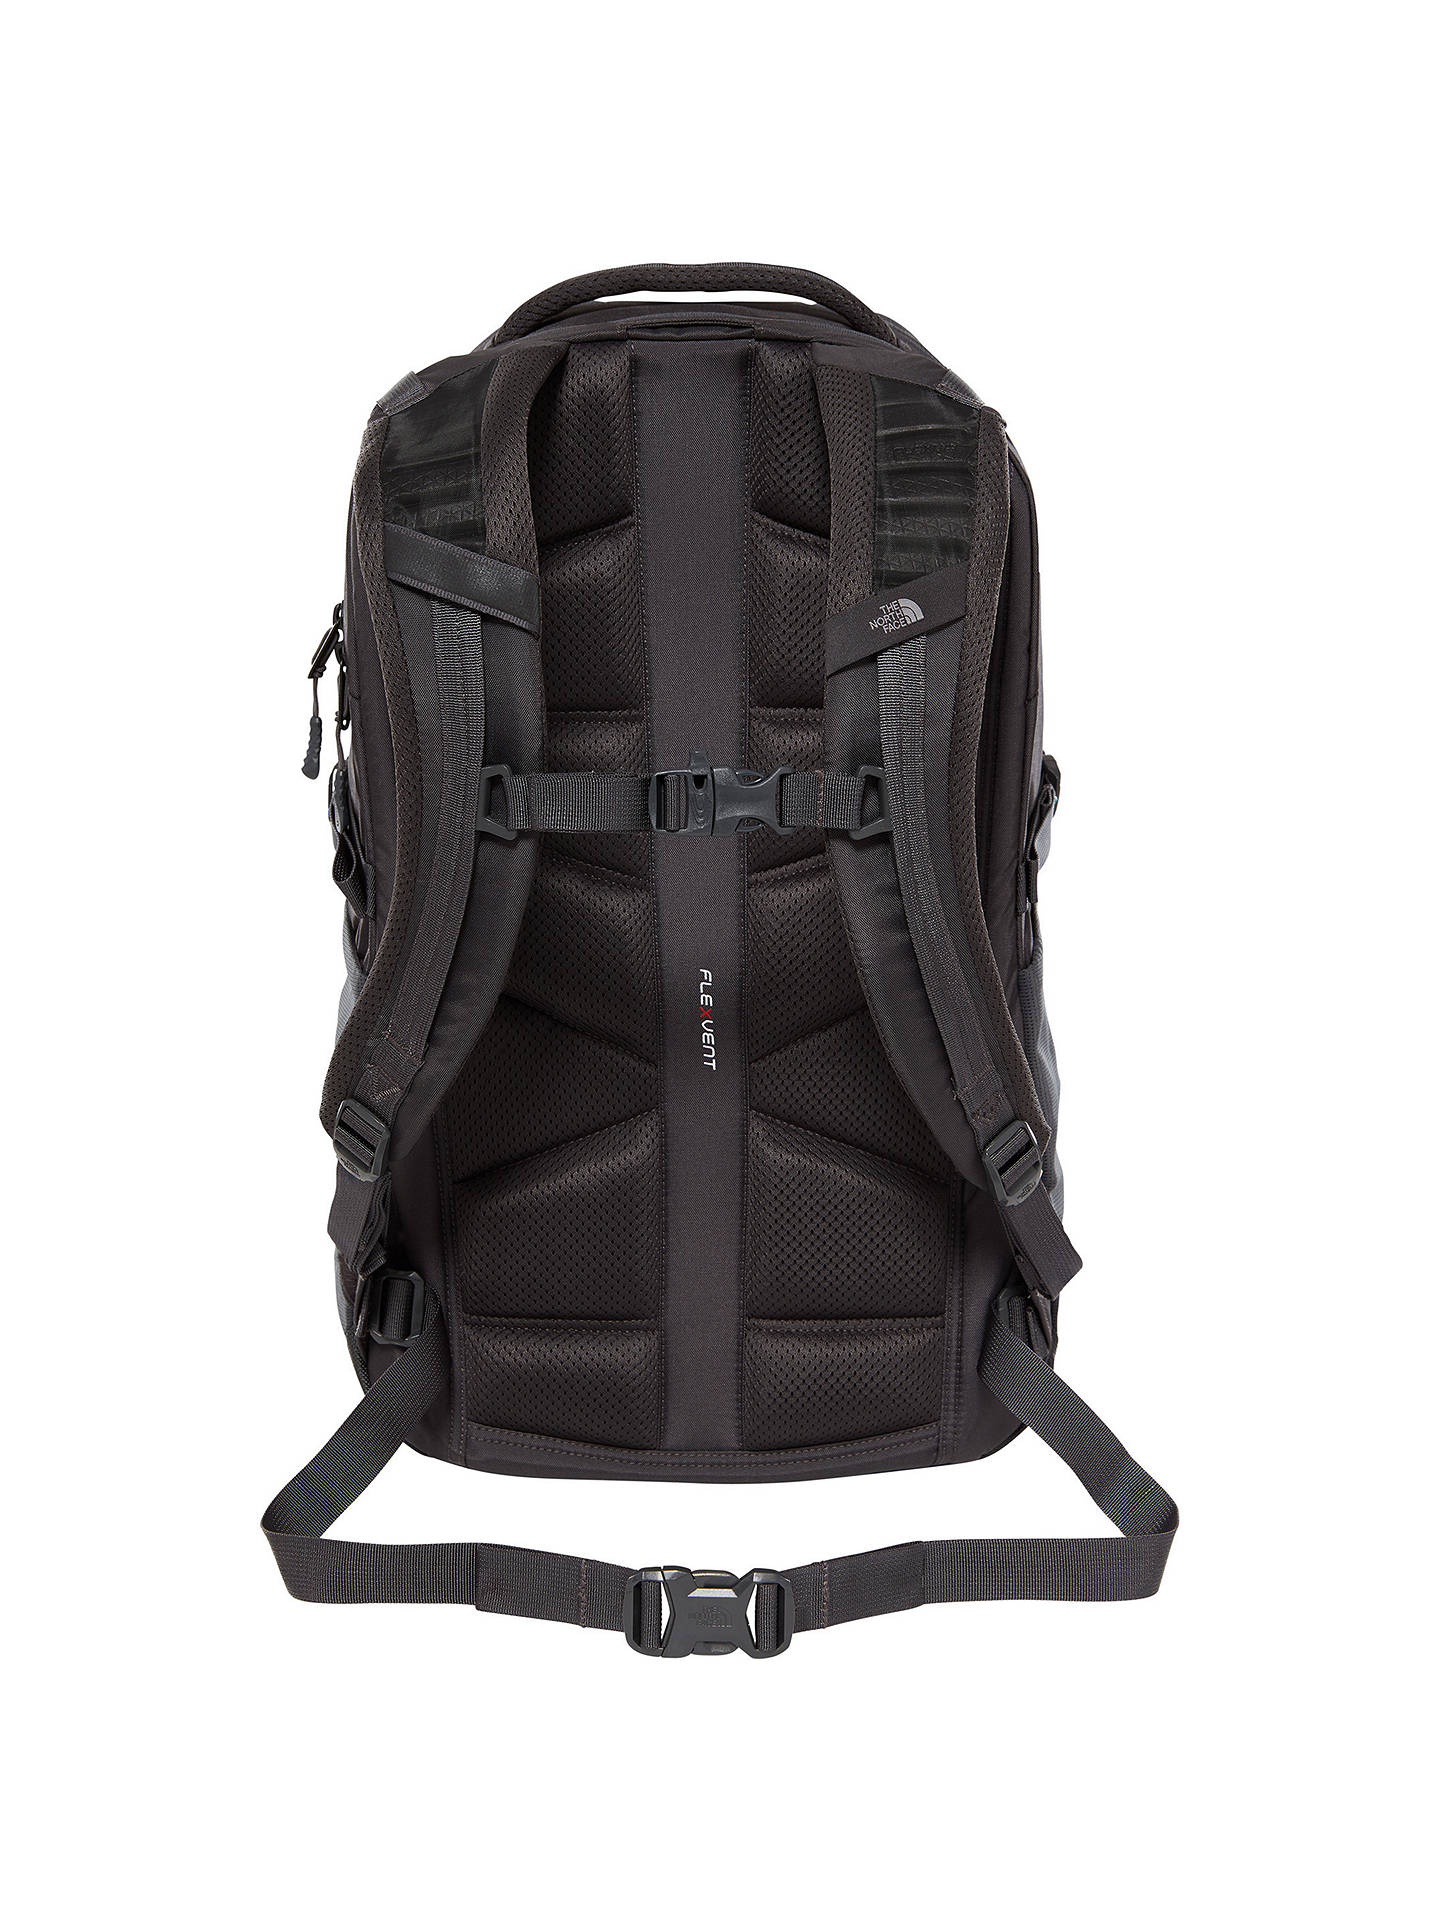 Buy The North Face Borealis Day Backpack, Asphalt Grey/Green Online at johnlewis.com